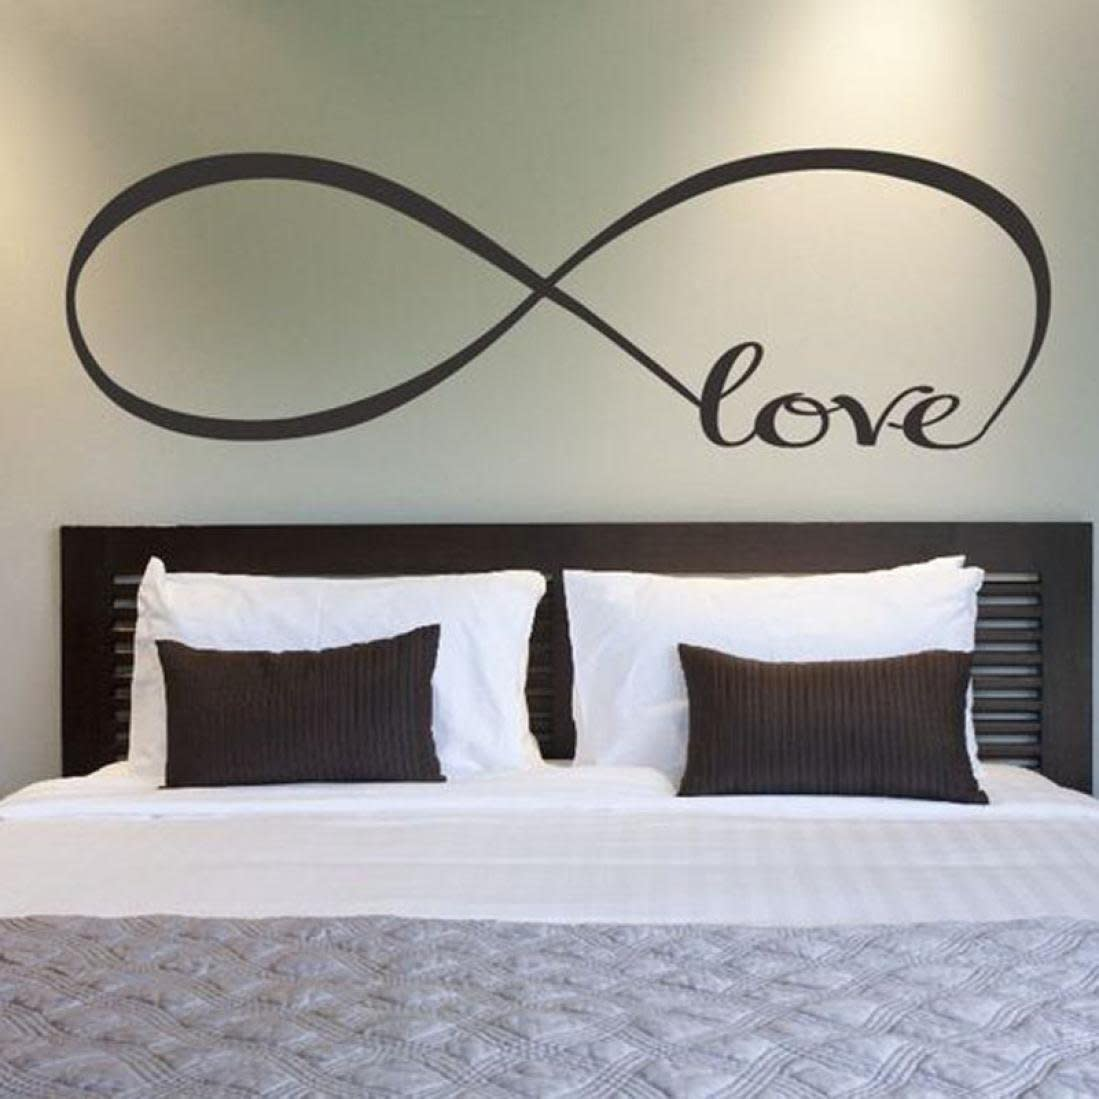 Love Bedroom Decor Removable Decal Art Mural Home Room Decor Wall Sticker Word Love